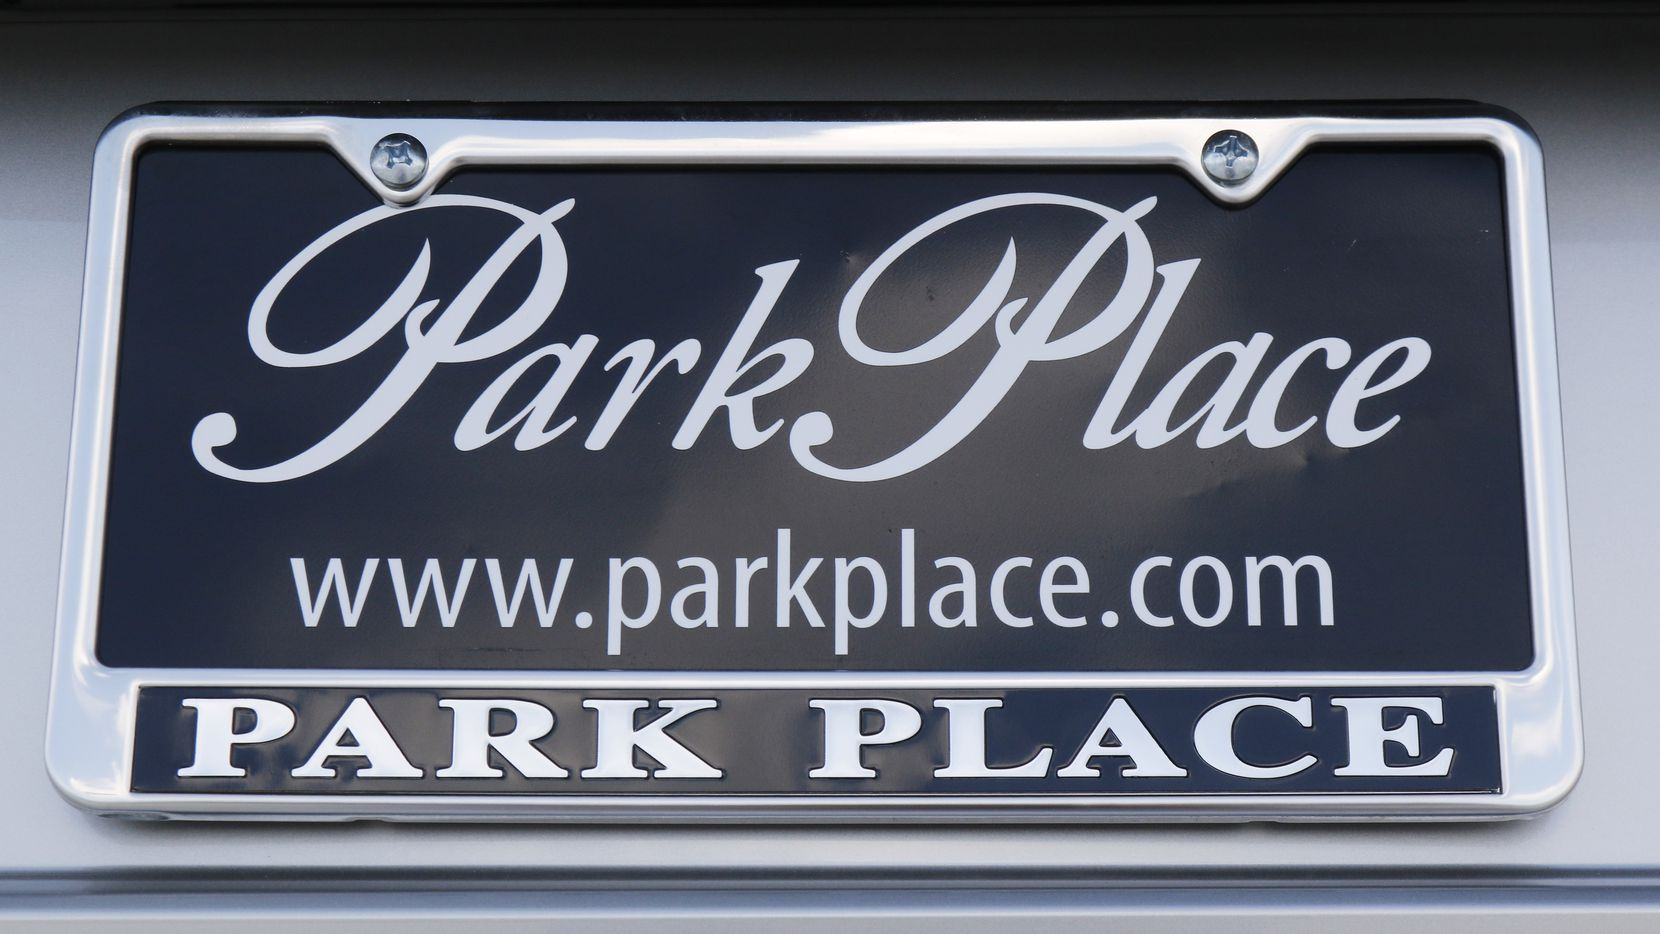 Park Place Dealerships Expanding With Acquisition Of Aston Martin Dallas